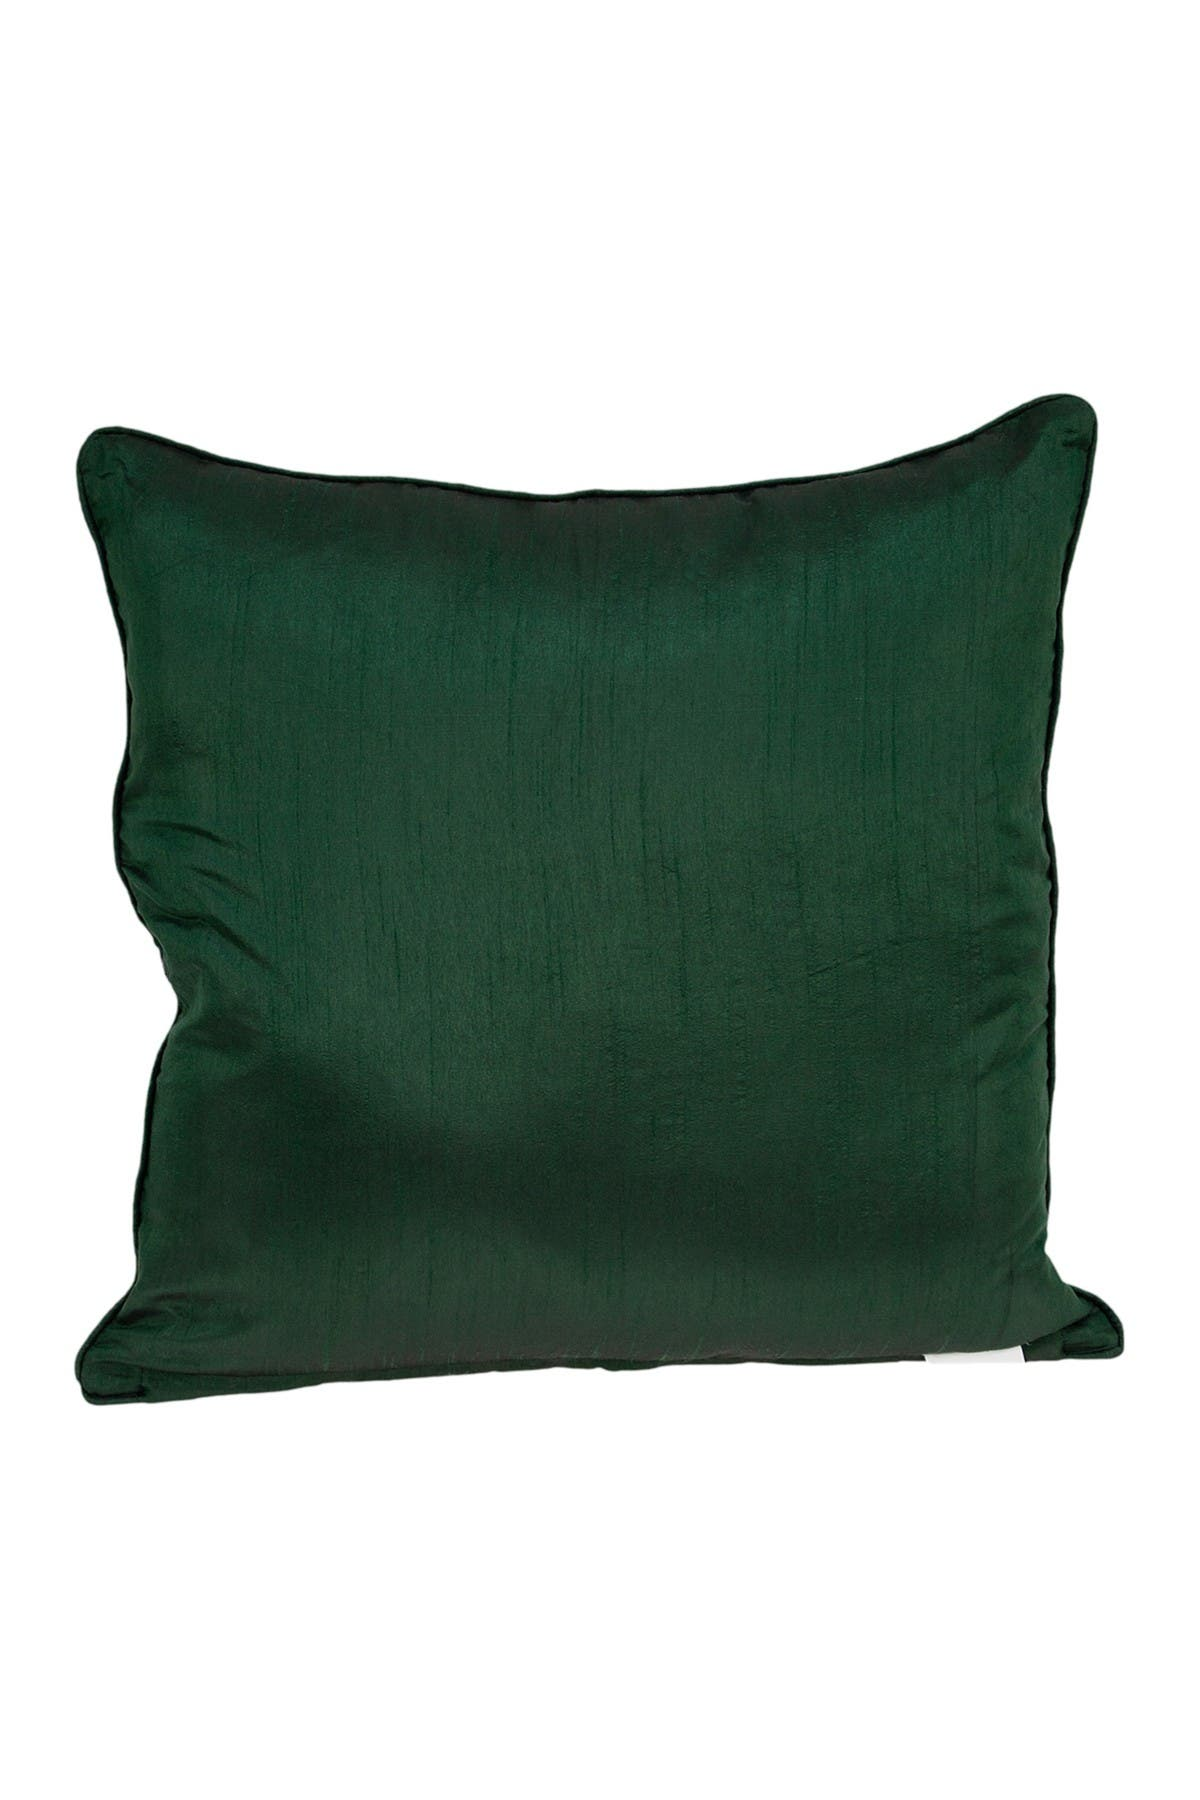 Image of Parkland Collection Ren Transitional Beige Throw Pillow